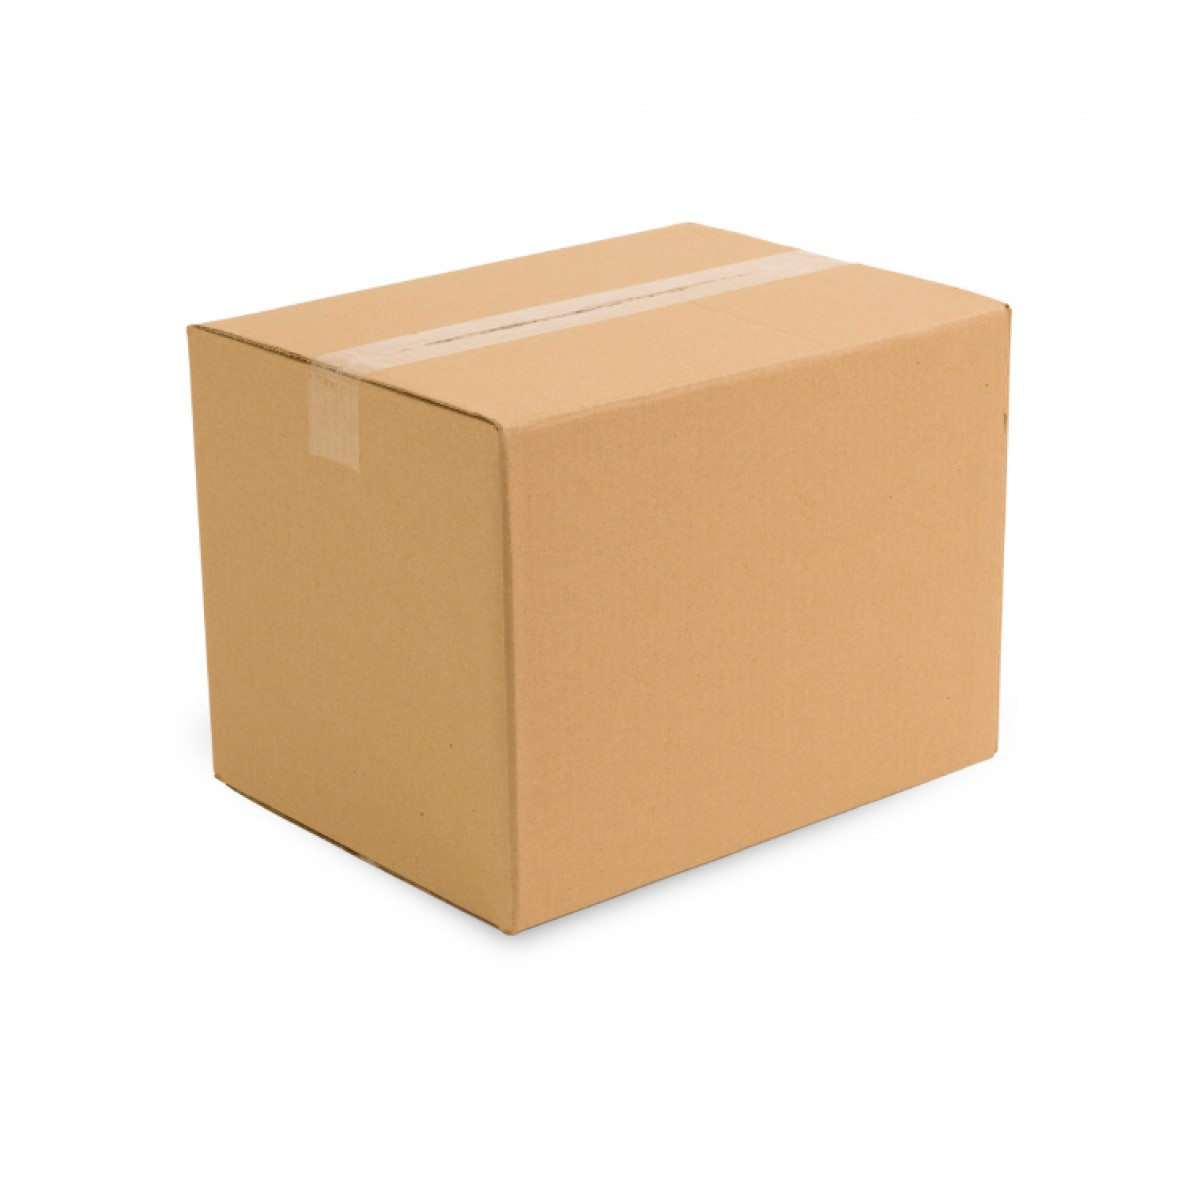 Image result for a box